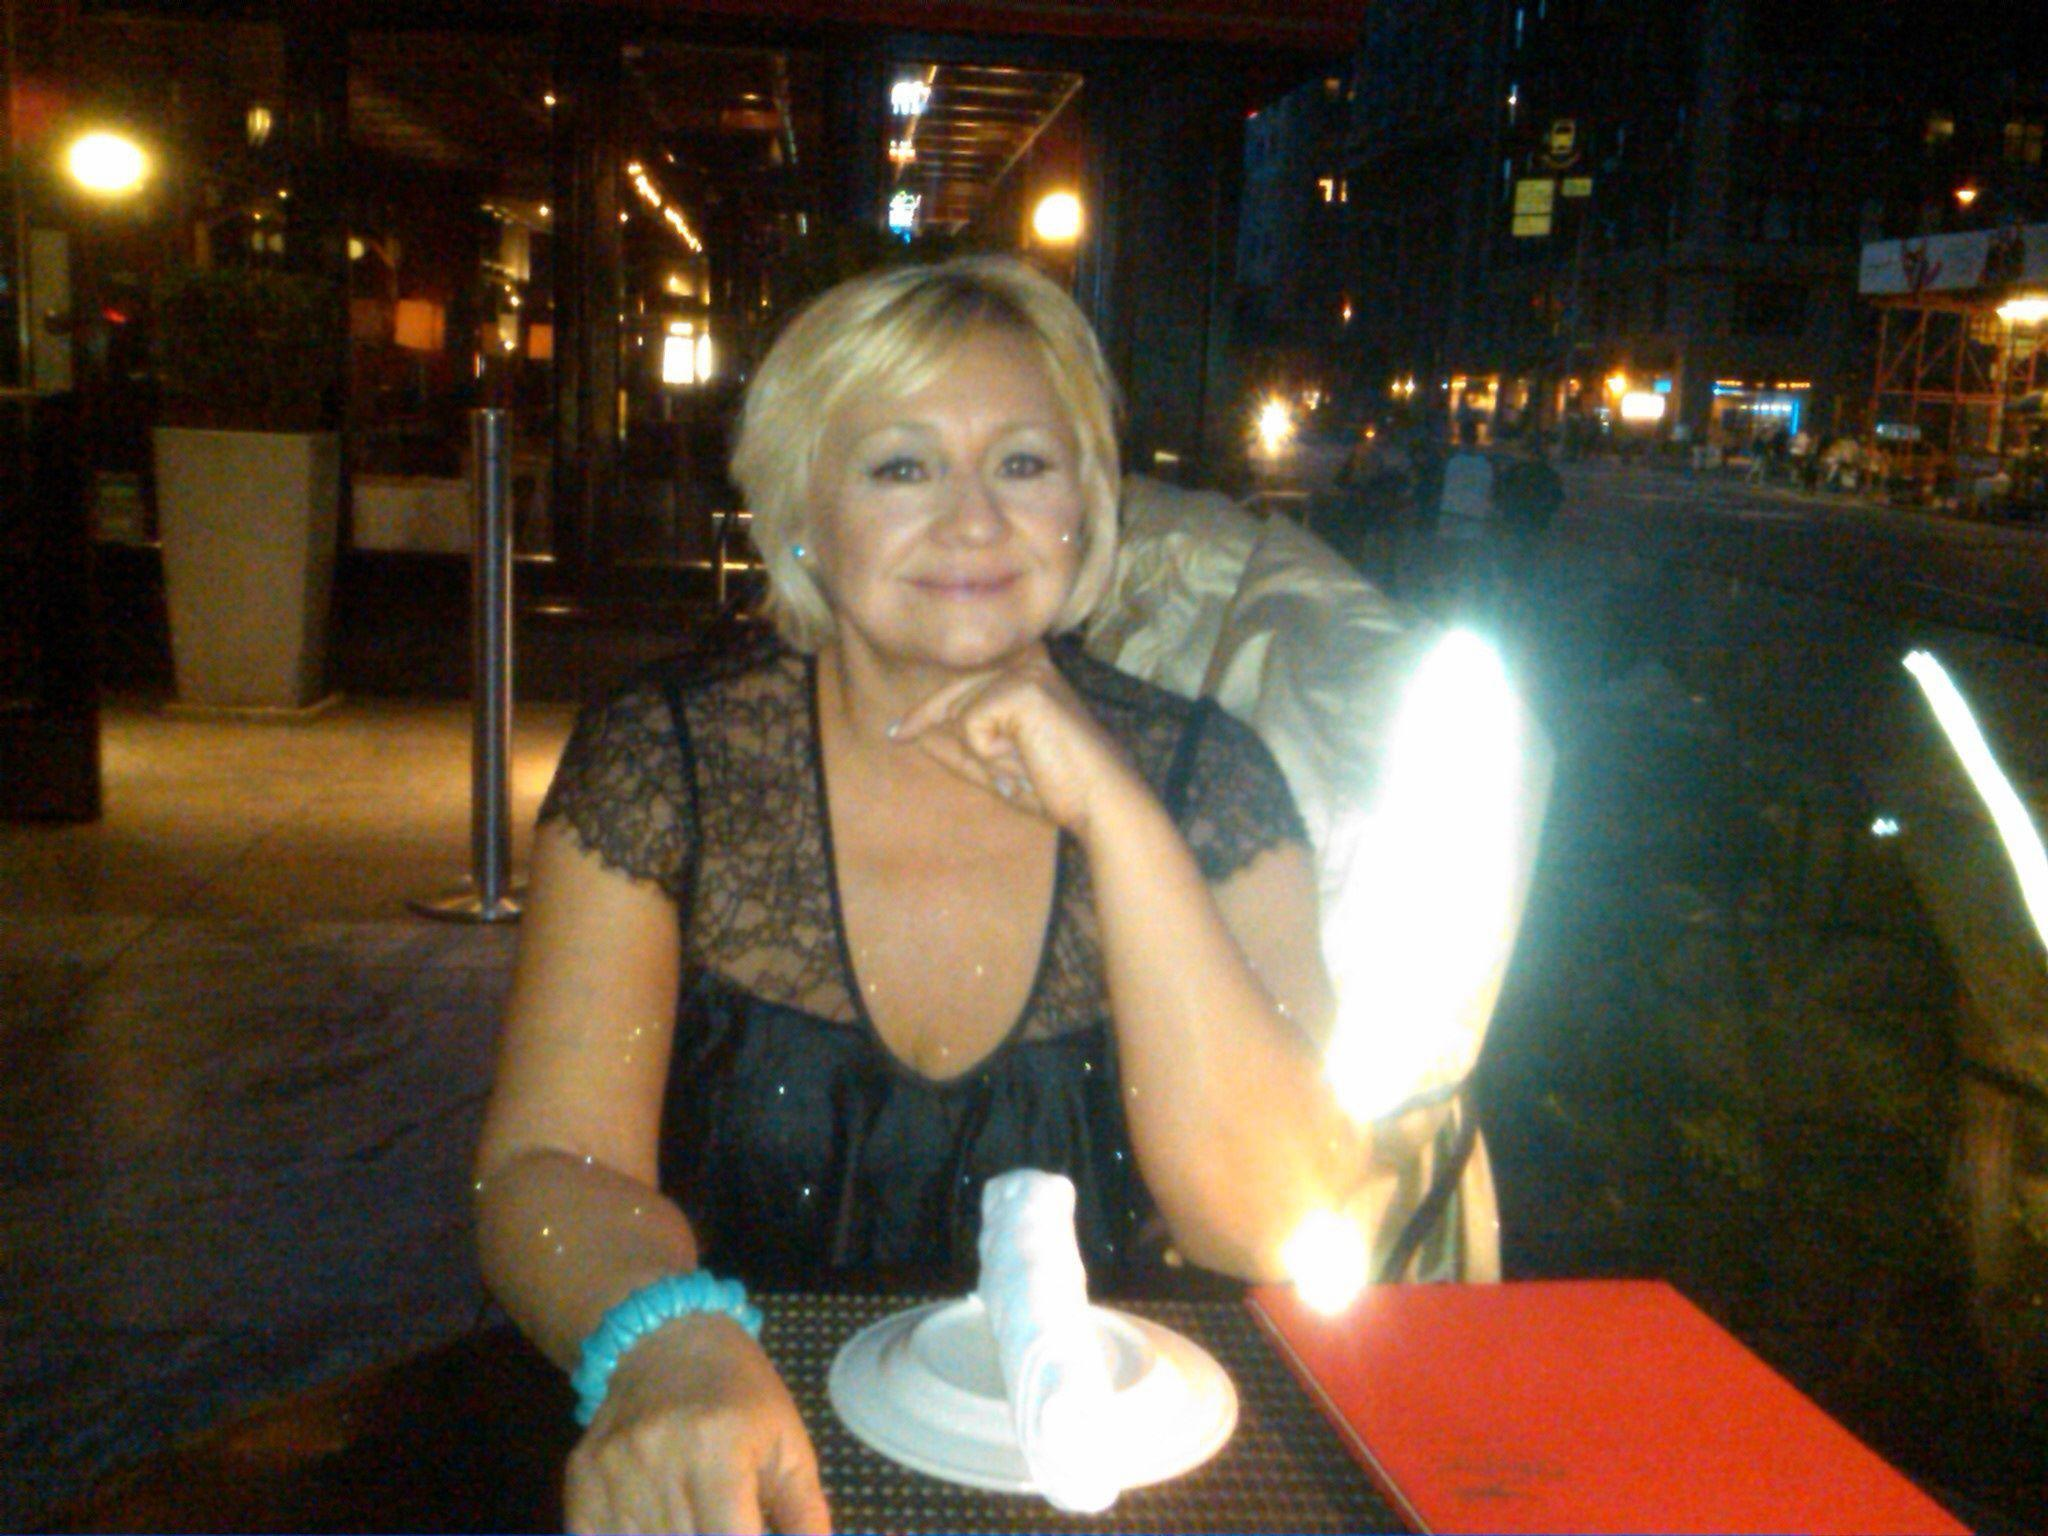 new kingston mature personals Kingston upon thames mature online dating website for single men and women over 40, over 50, over 60 in kingston upon thames and the local area.